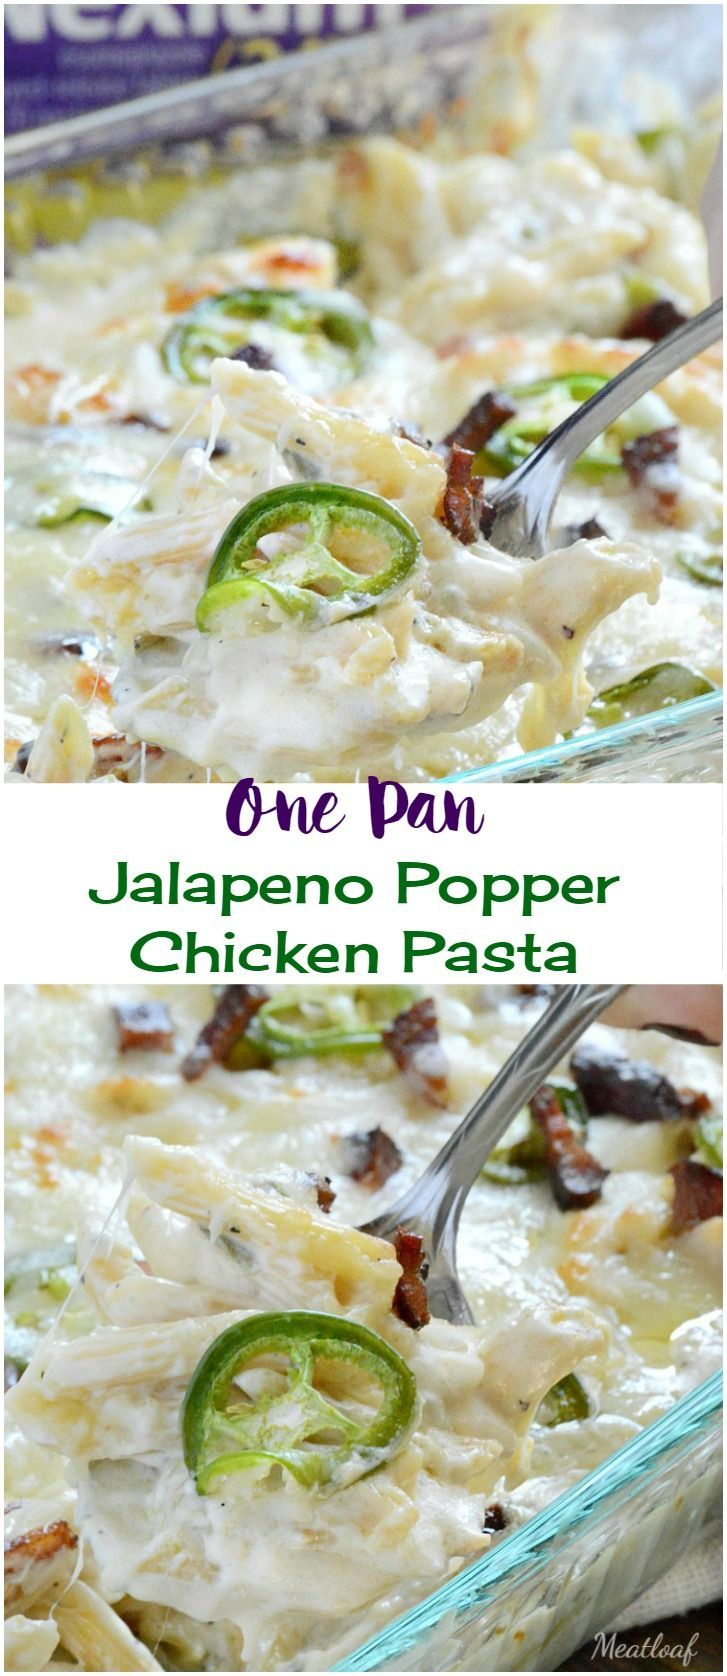 one pan jalapeno popper chicken pasta